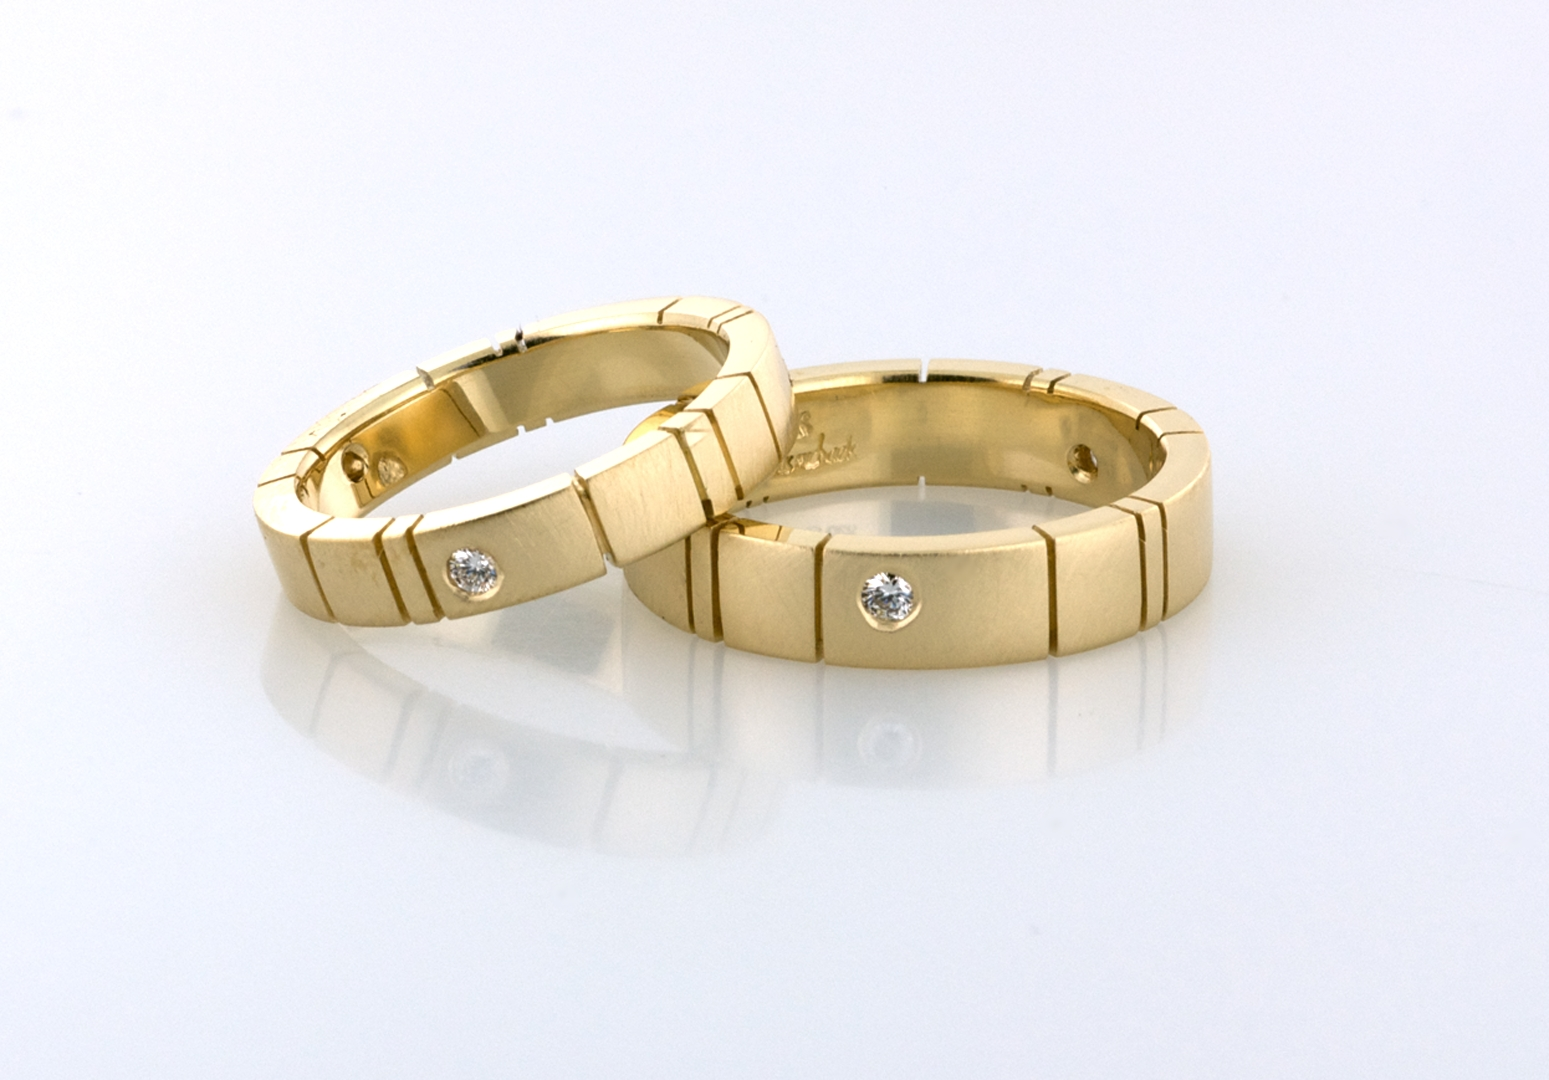 Gold Wedding Bands With Diamond Accents R1010 | Wedding Bands Pertaining To Anniversary Wedding Bands Sets (View 9 of 15)